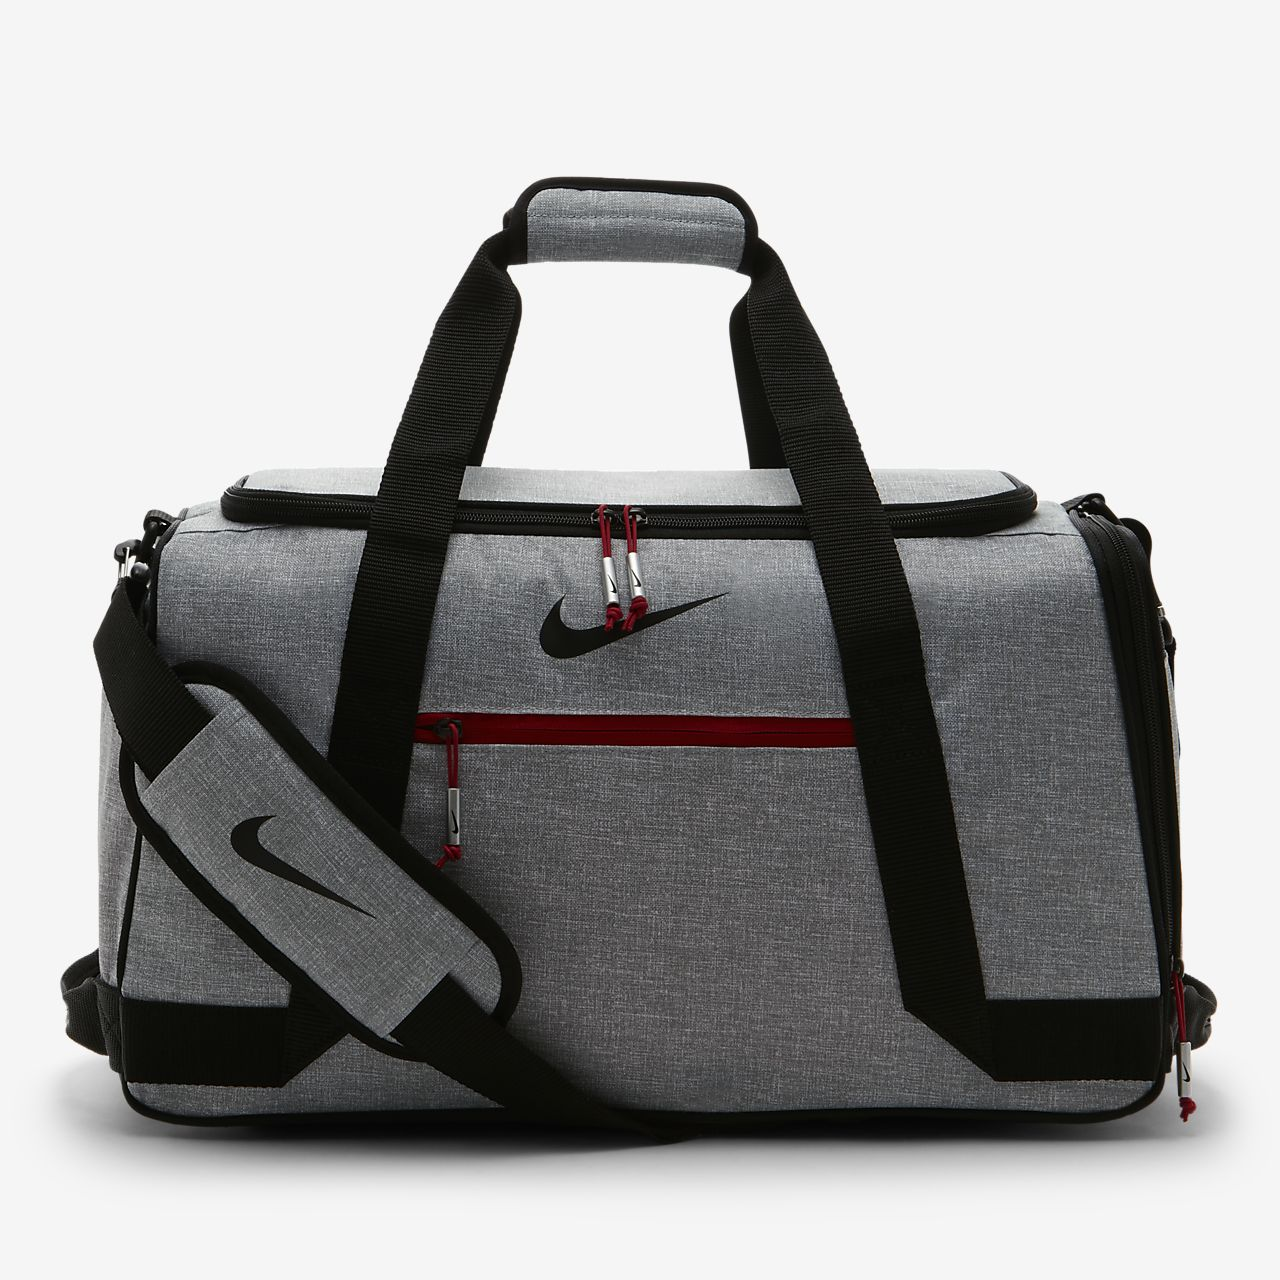 nike sport duffel bag. Black Bedroom Furniture Sets. Home Design Ideas